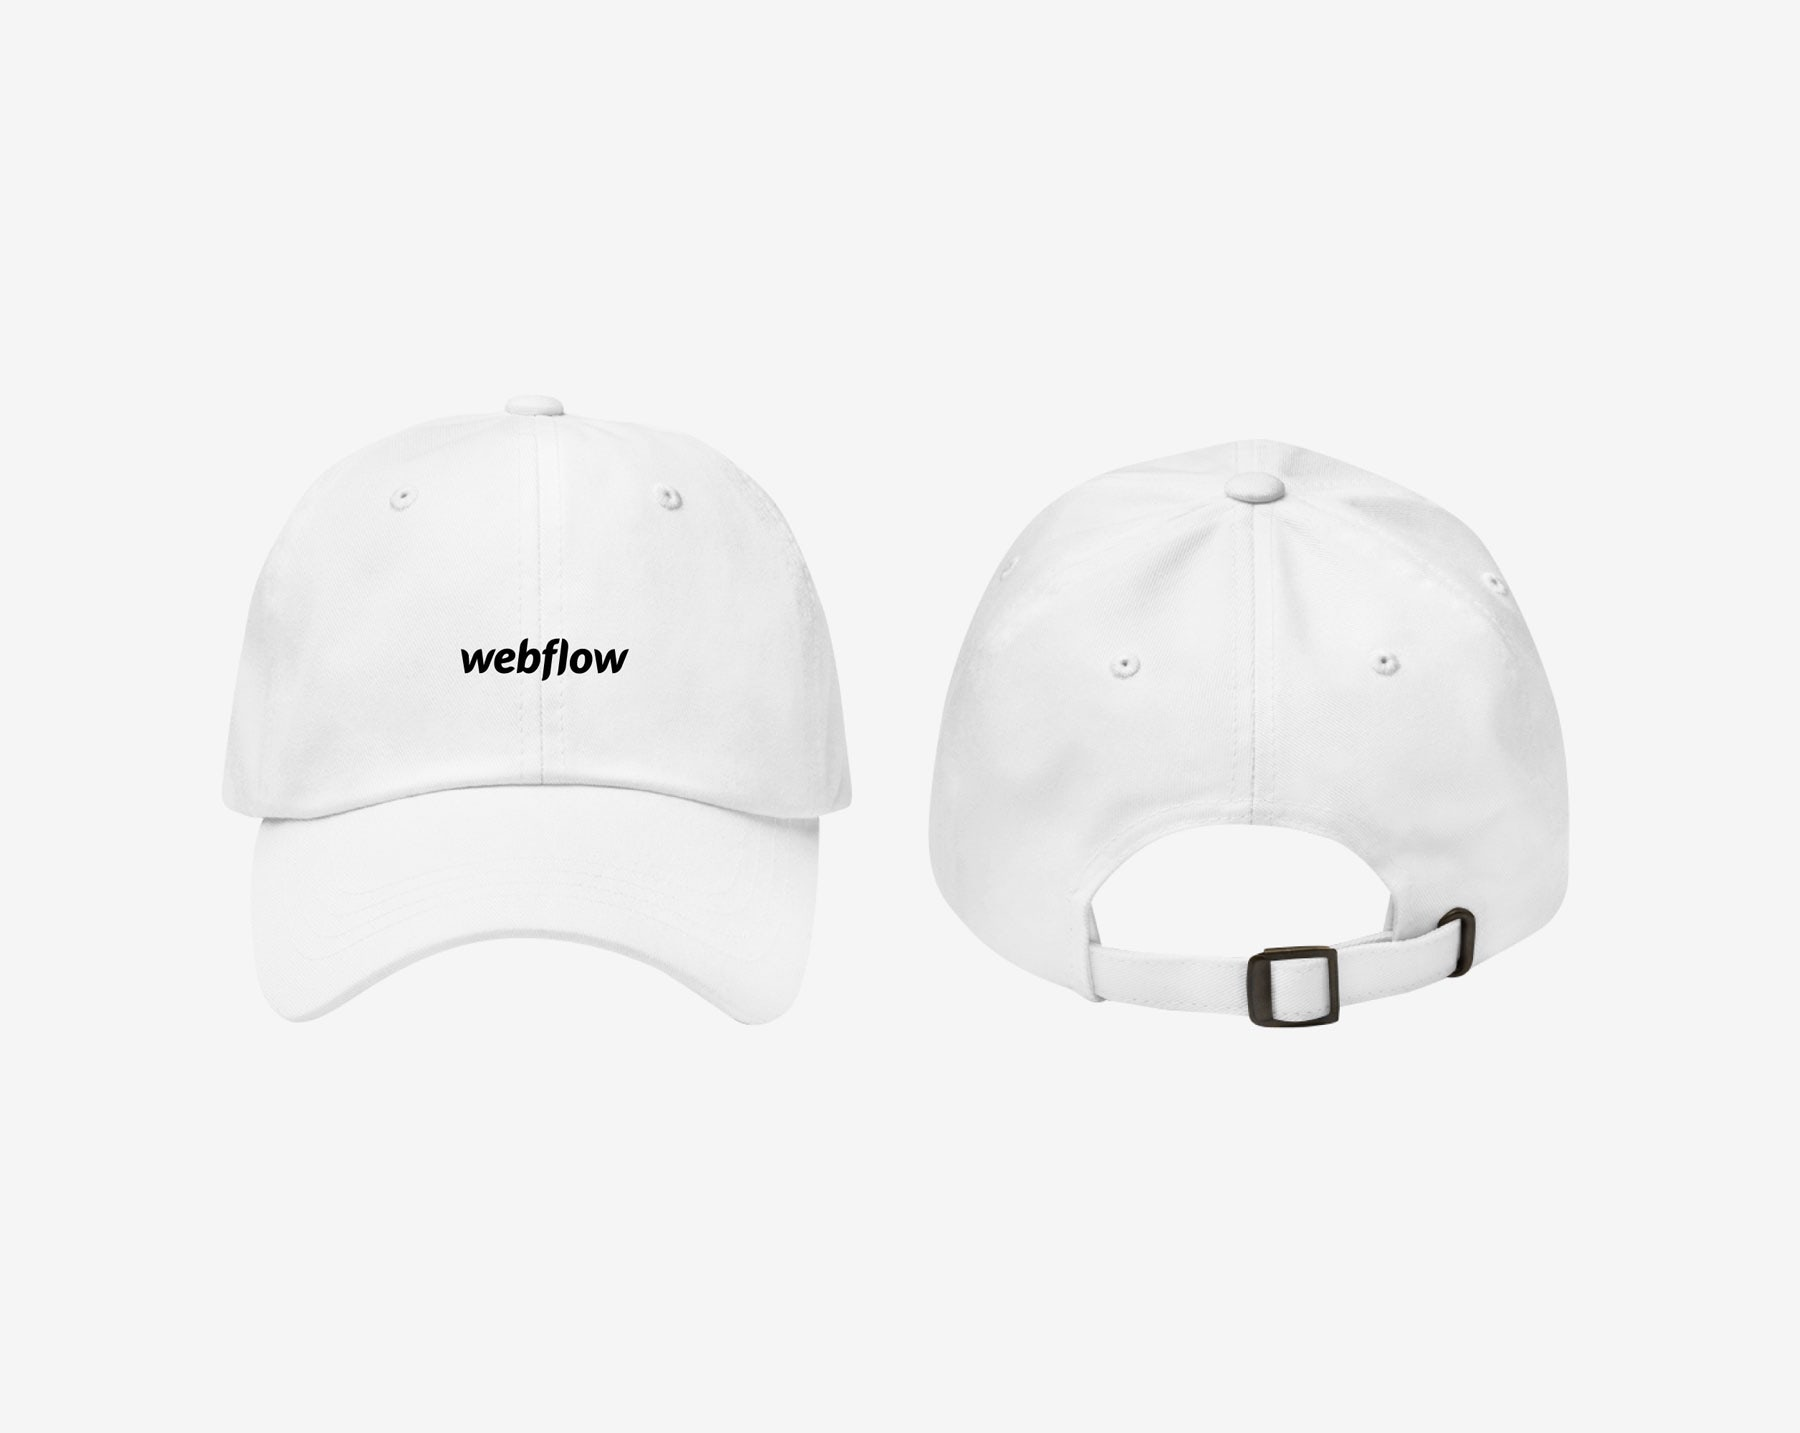 A low profile, adjustable hat with a curved visor and a small Webflow logo centered on the front.